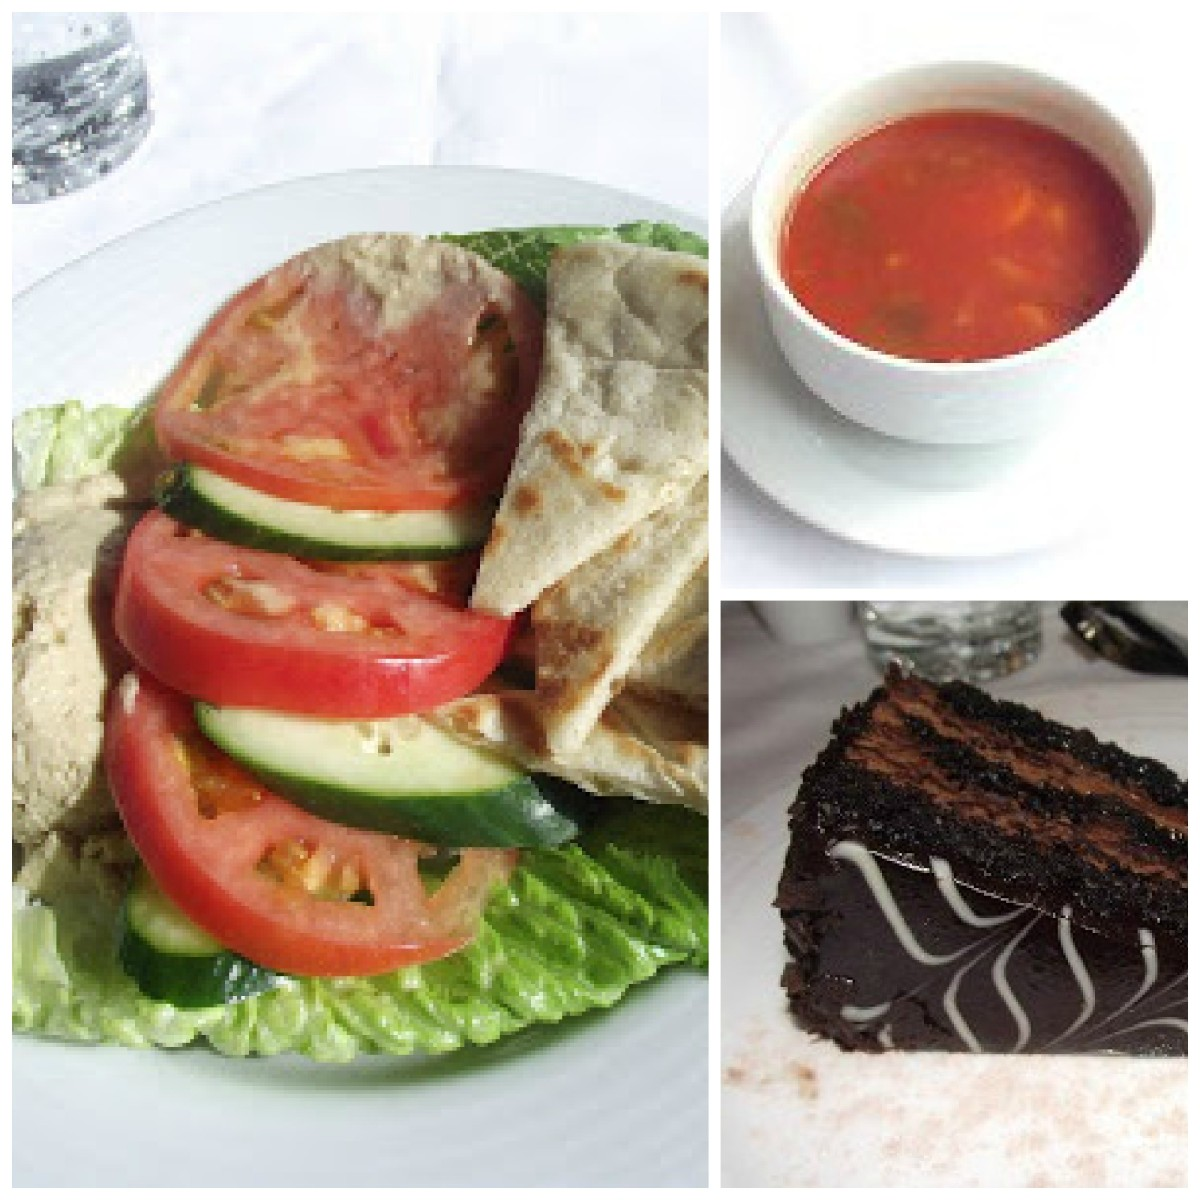 vegetable soup, hummus plate, decadent chocolate-caramel cake